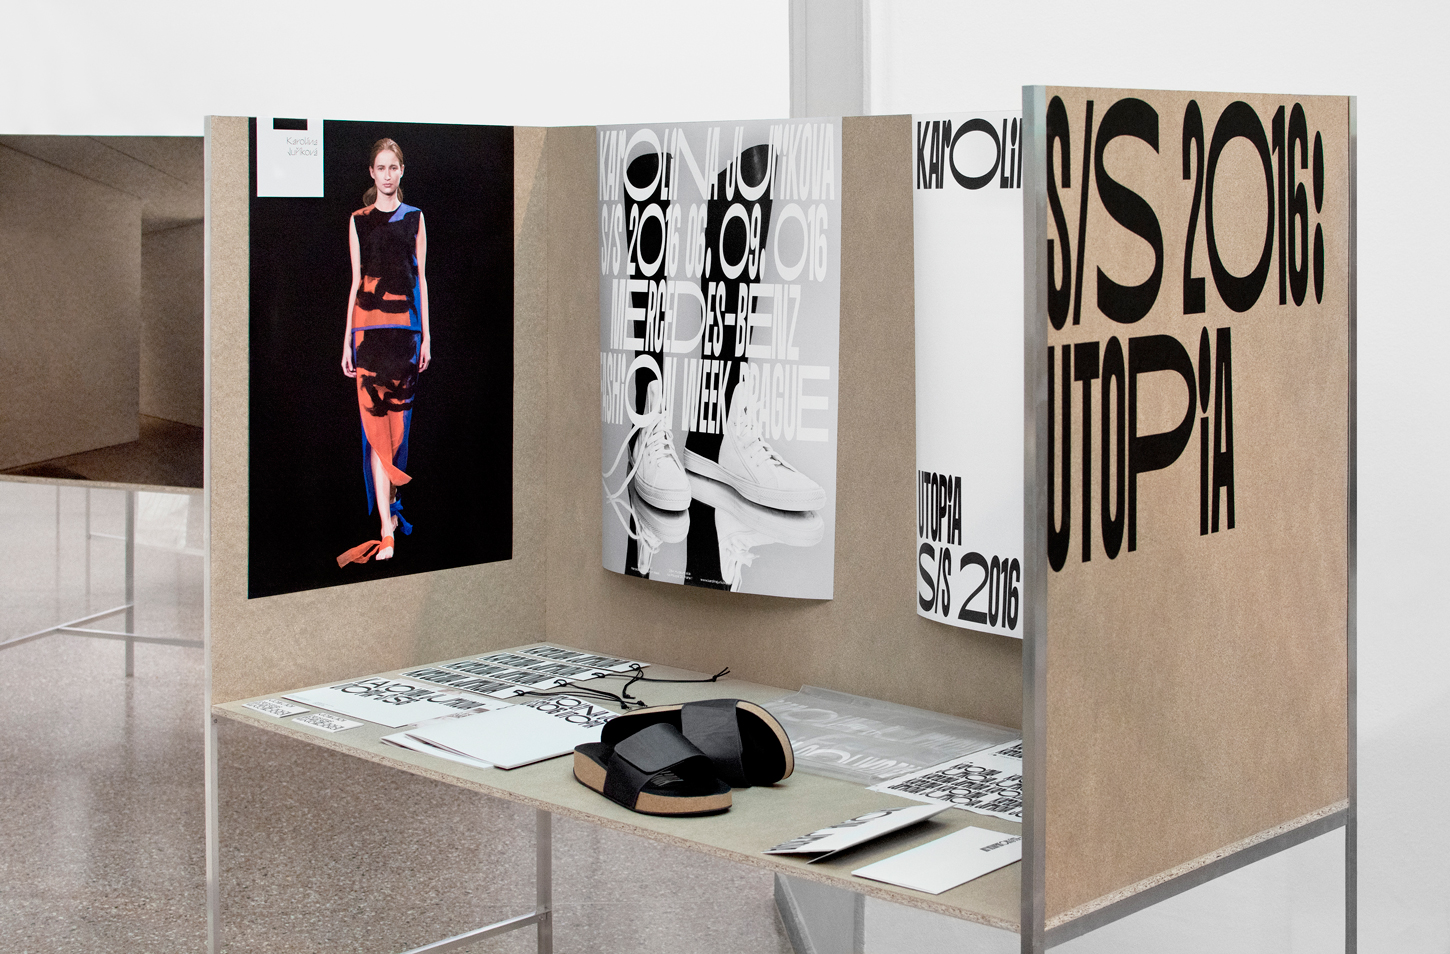 27th Biennial of Graphic Design Brno